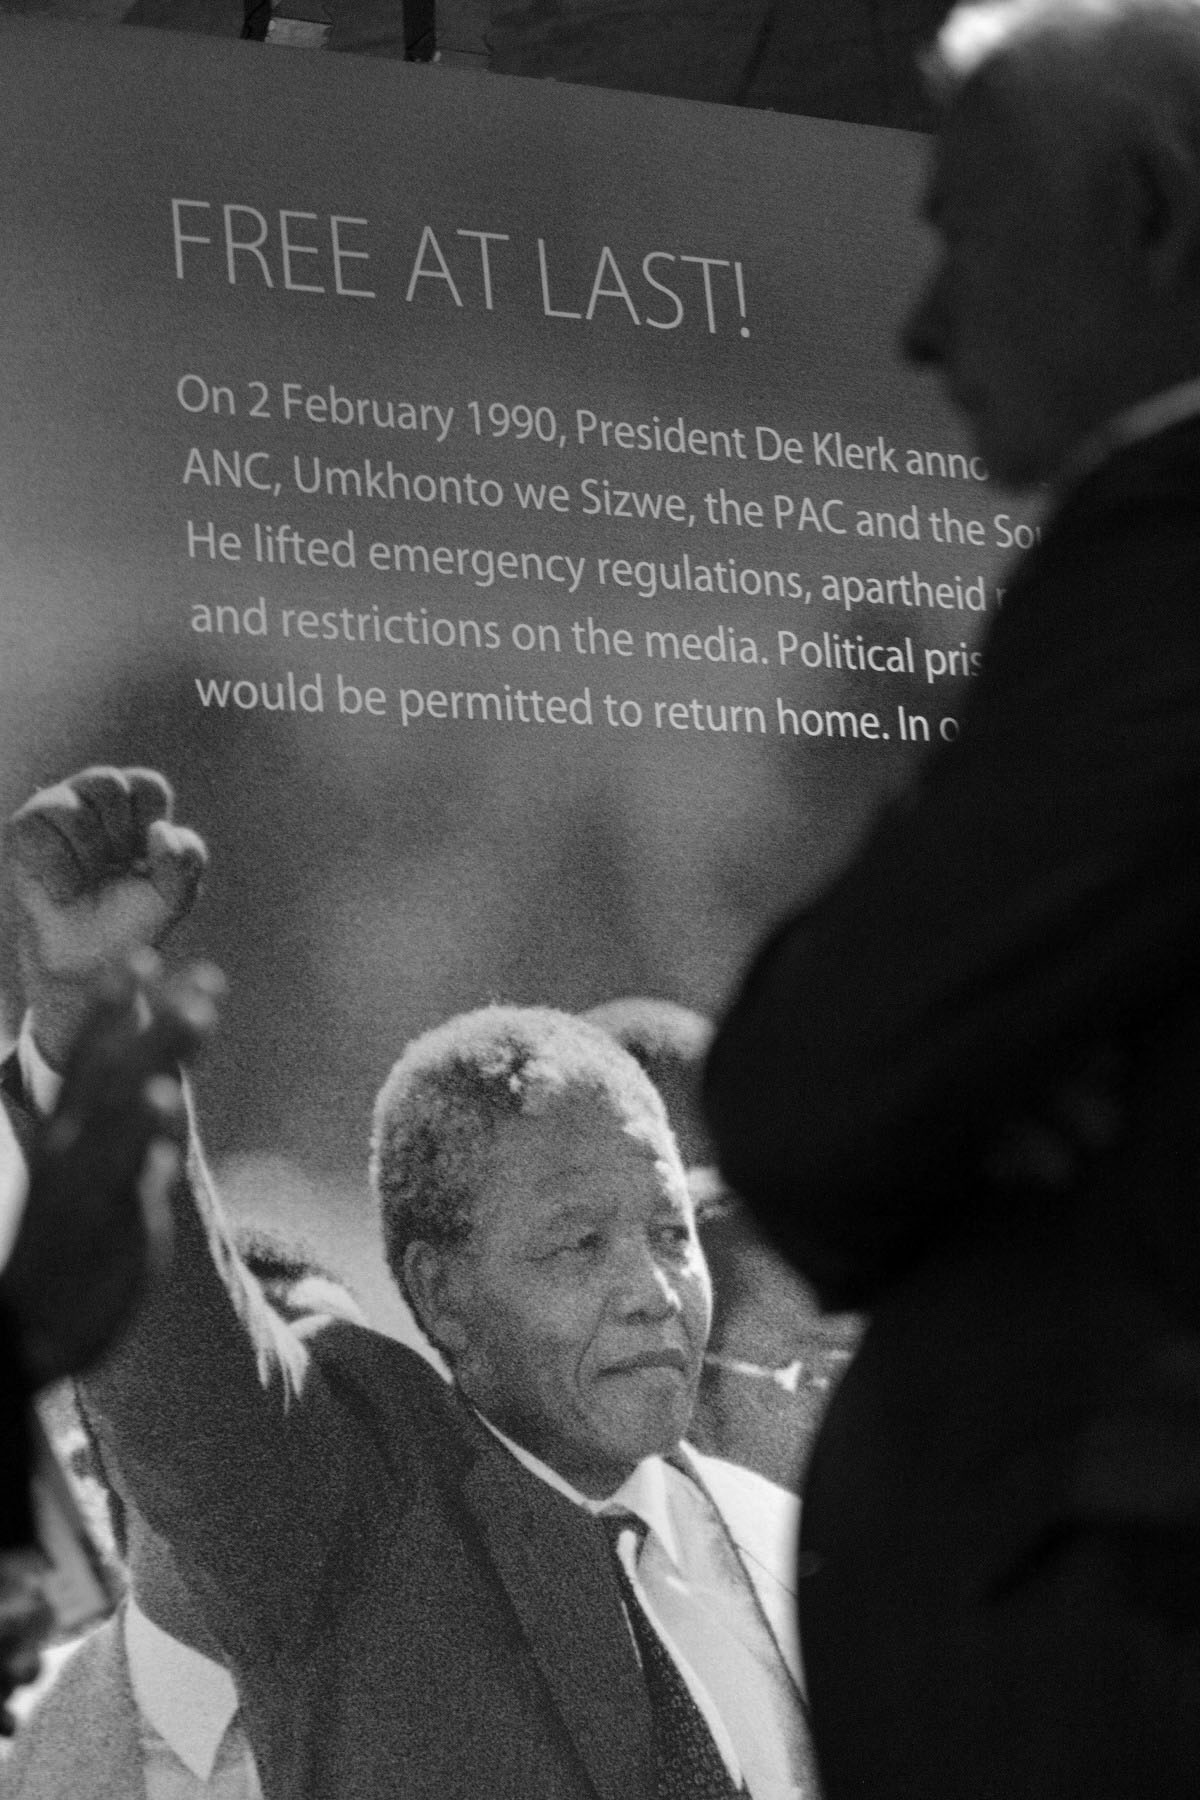 This great African leader initiated and led negotiations in the 1990s, and served as the first president of a democratic South Africa, building a new nation from the fragments of conflict.